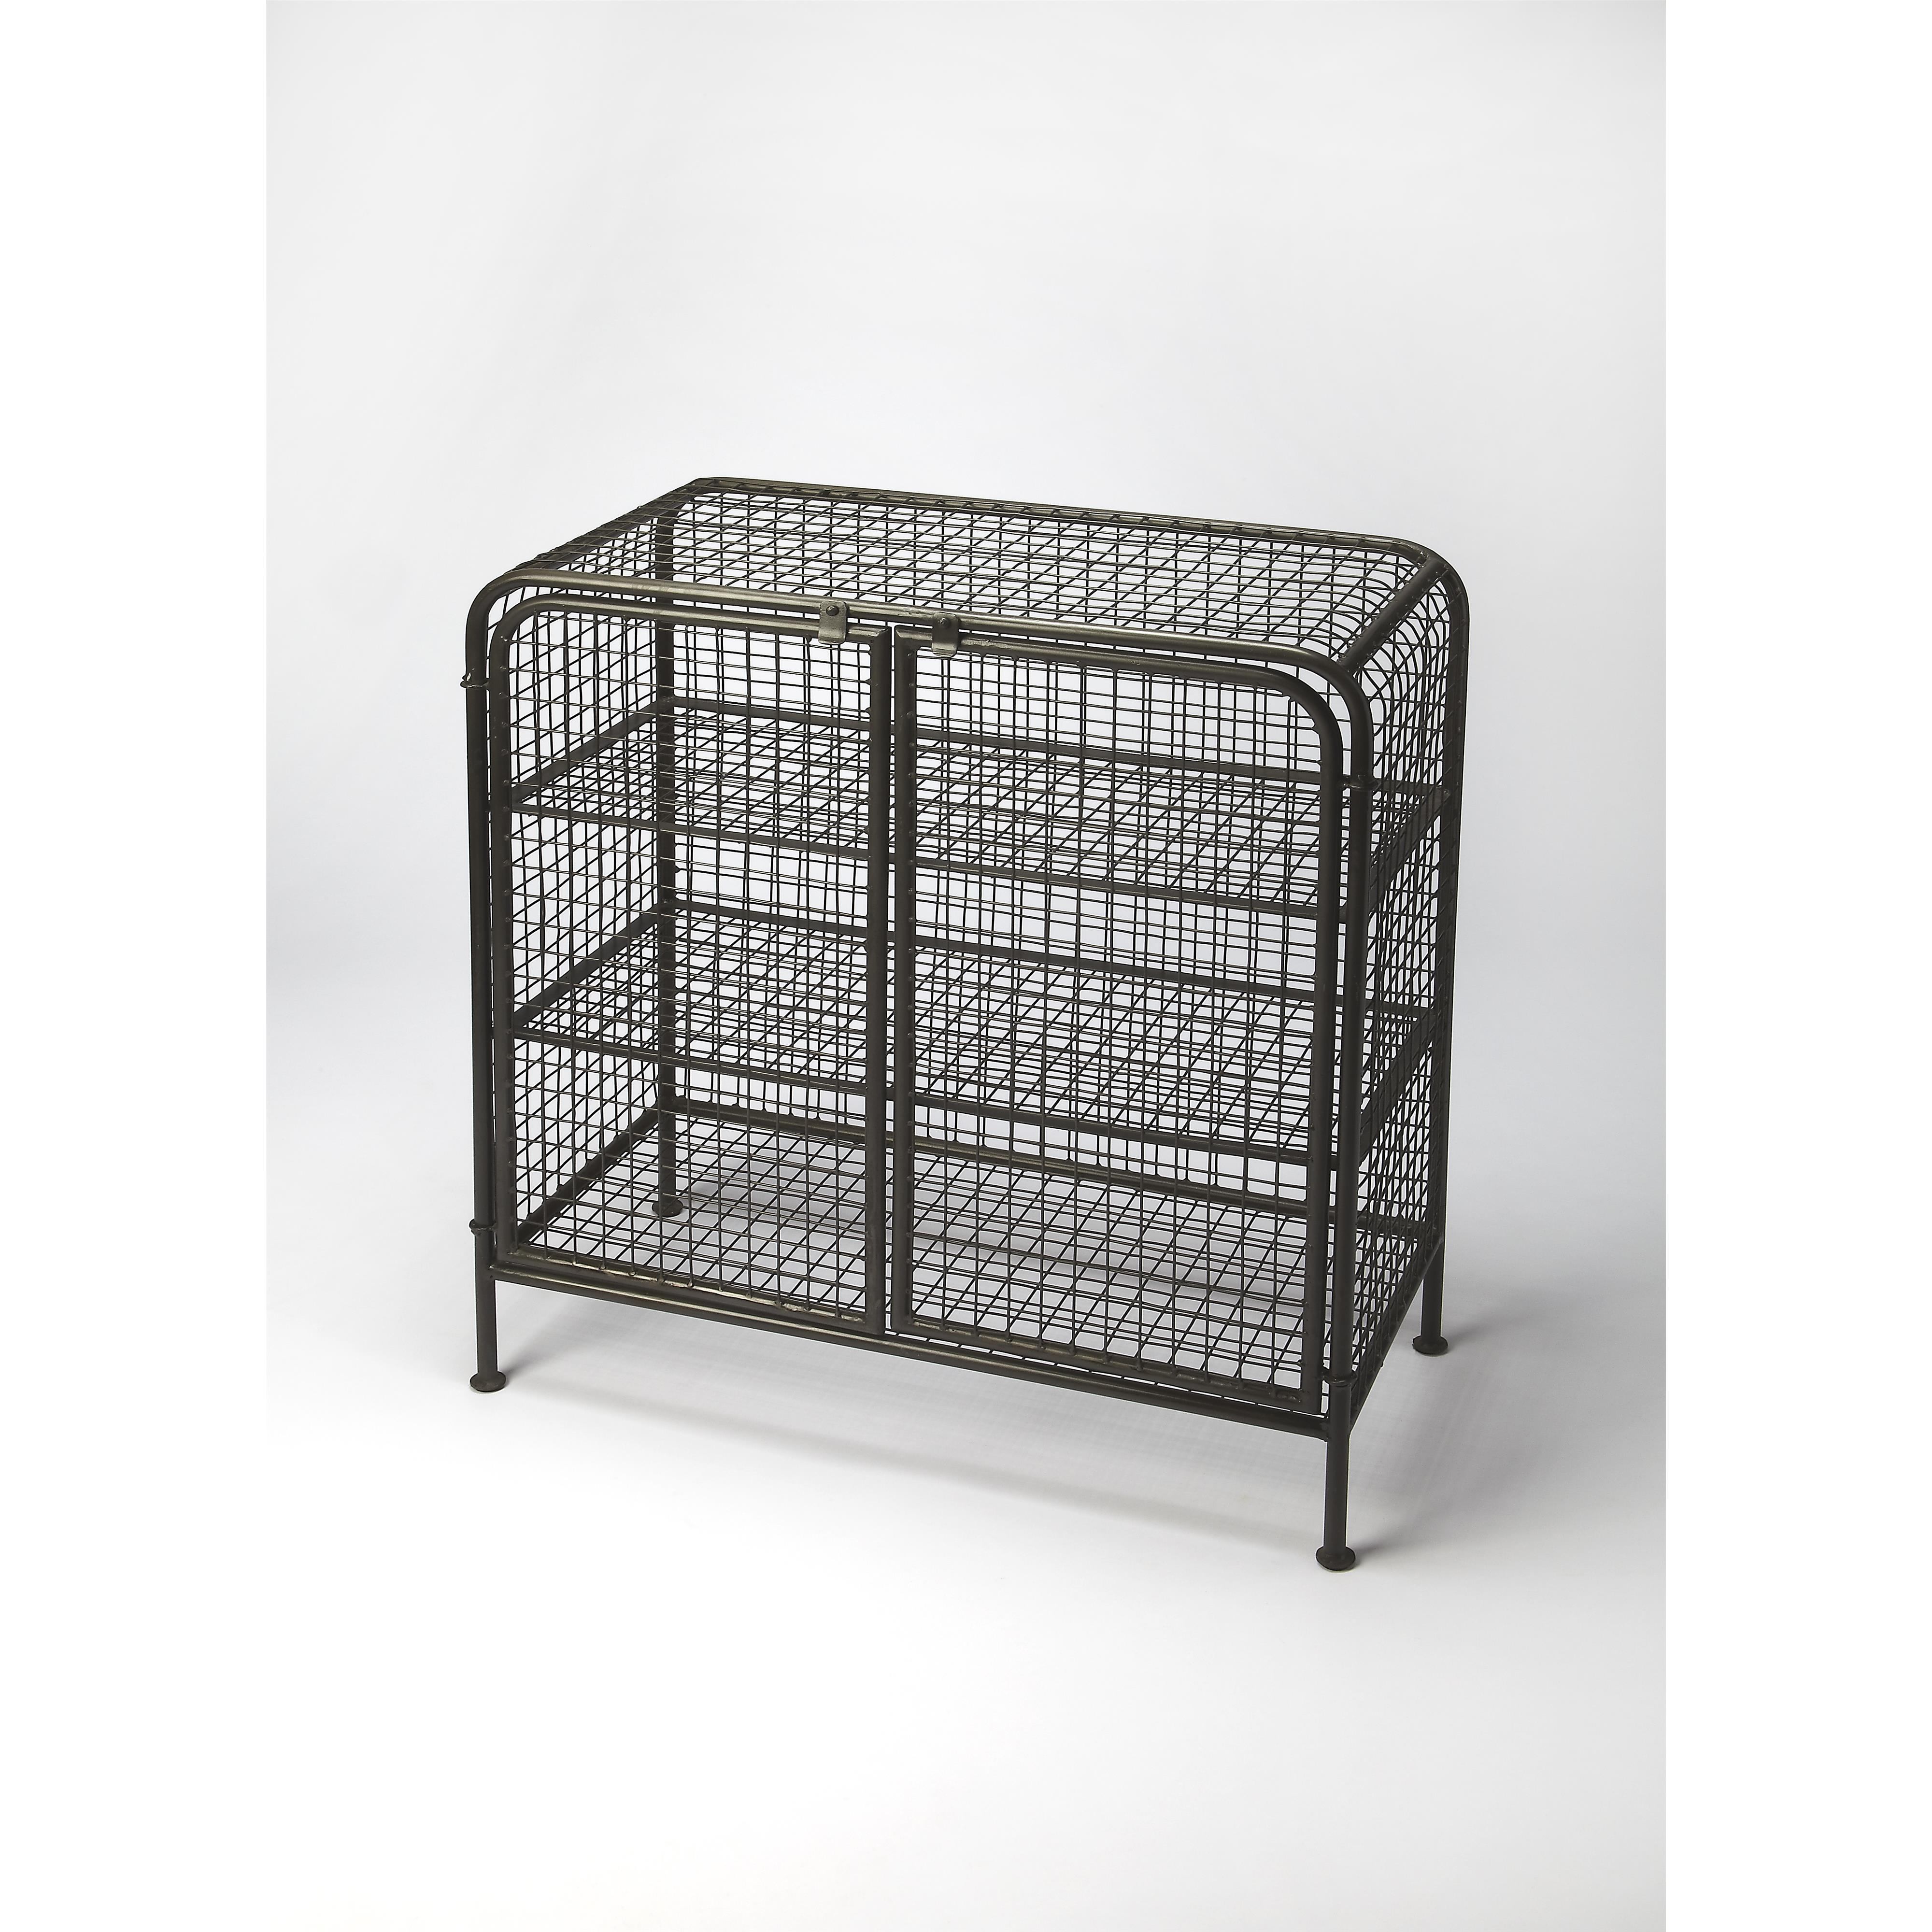 Butler Specialty Company Industrial Chic Cabinet - Item Number: 6129330